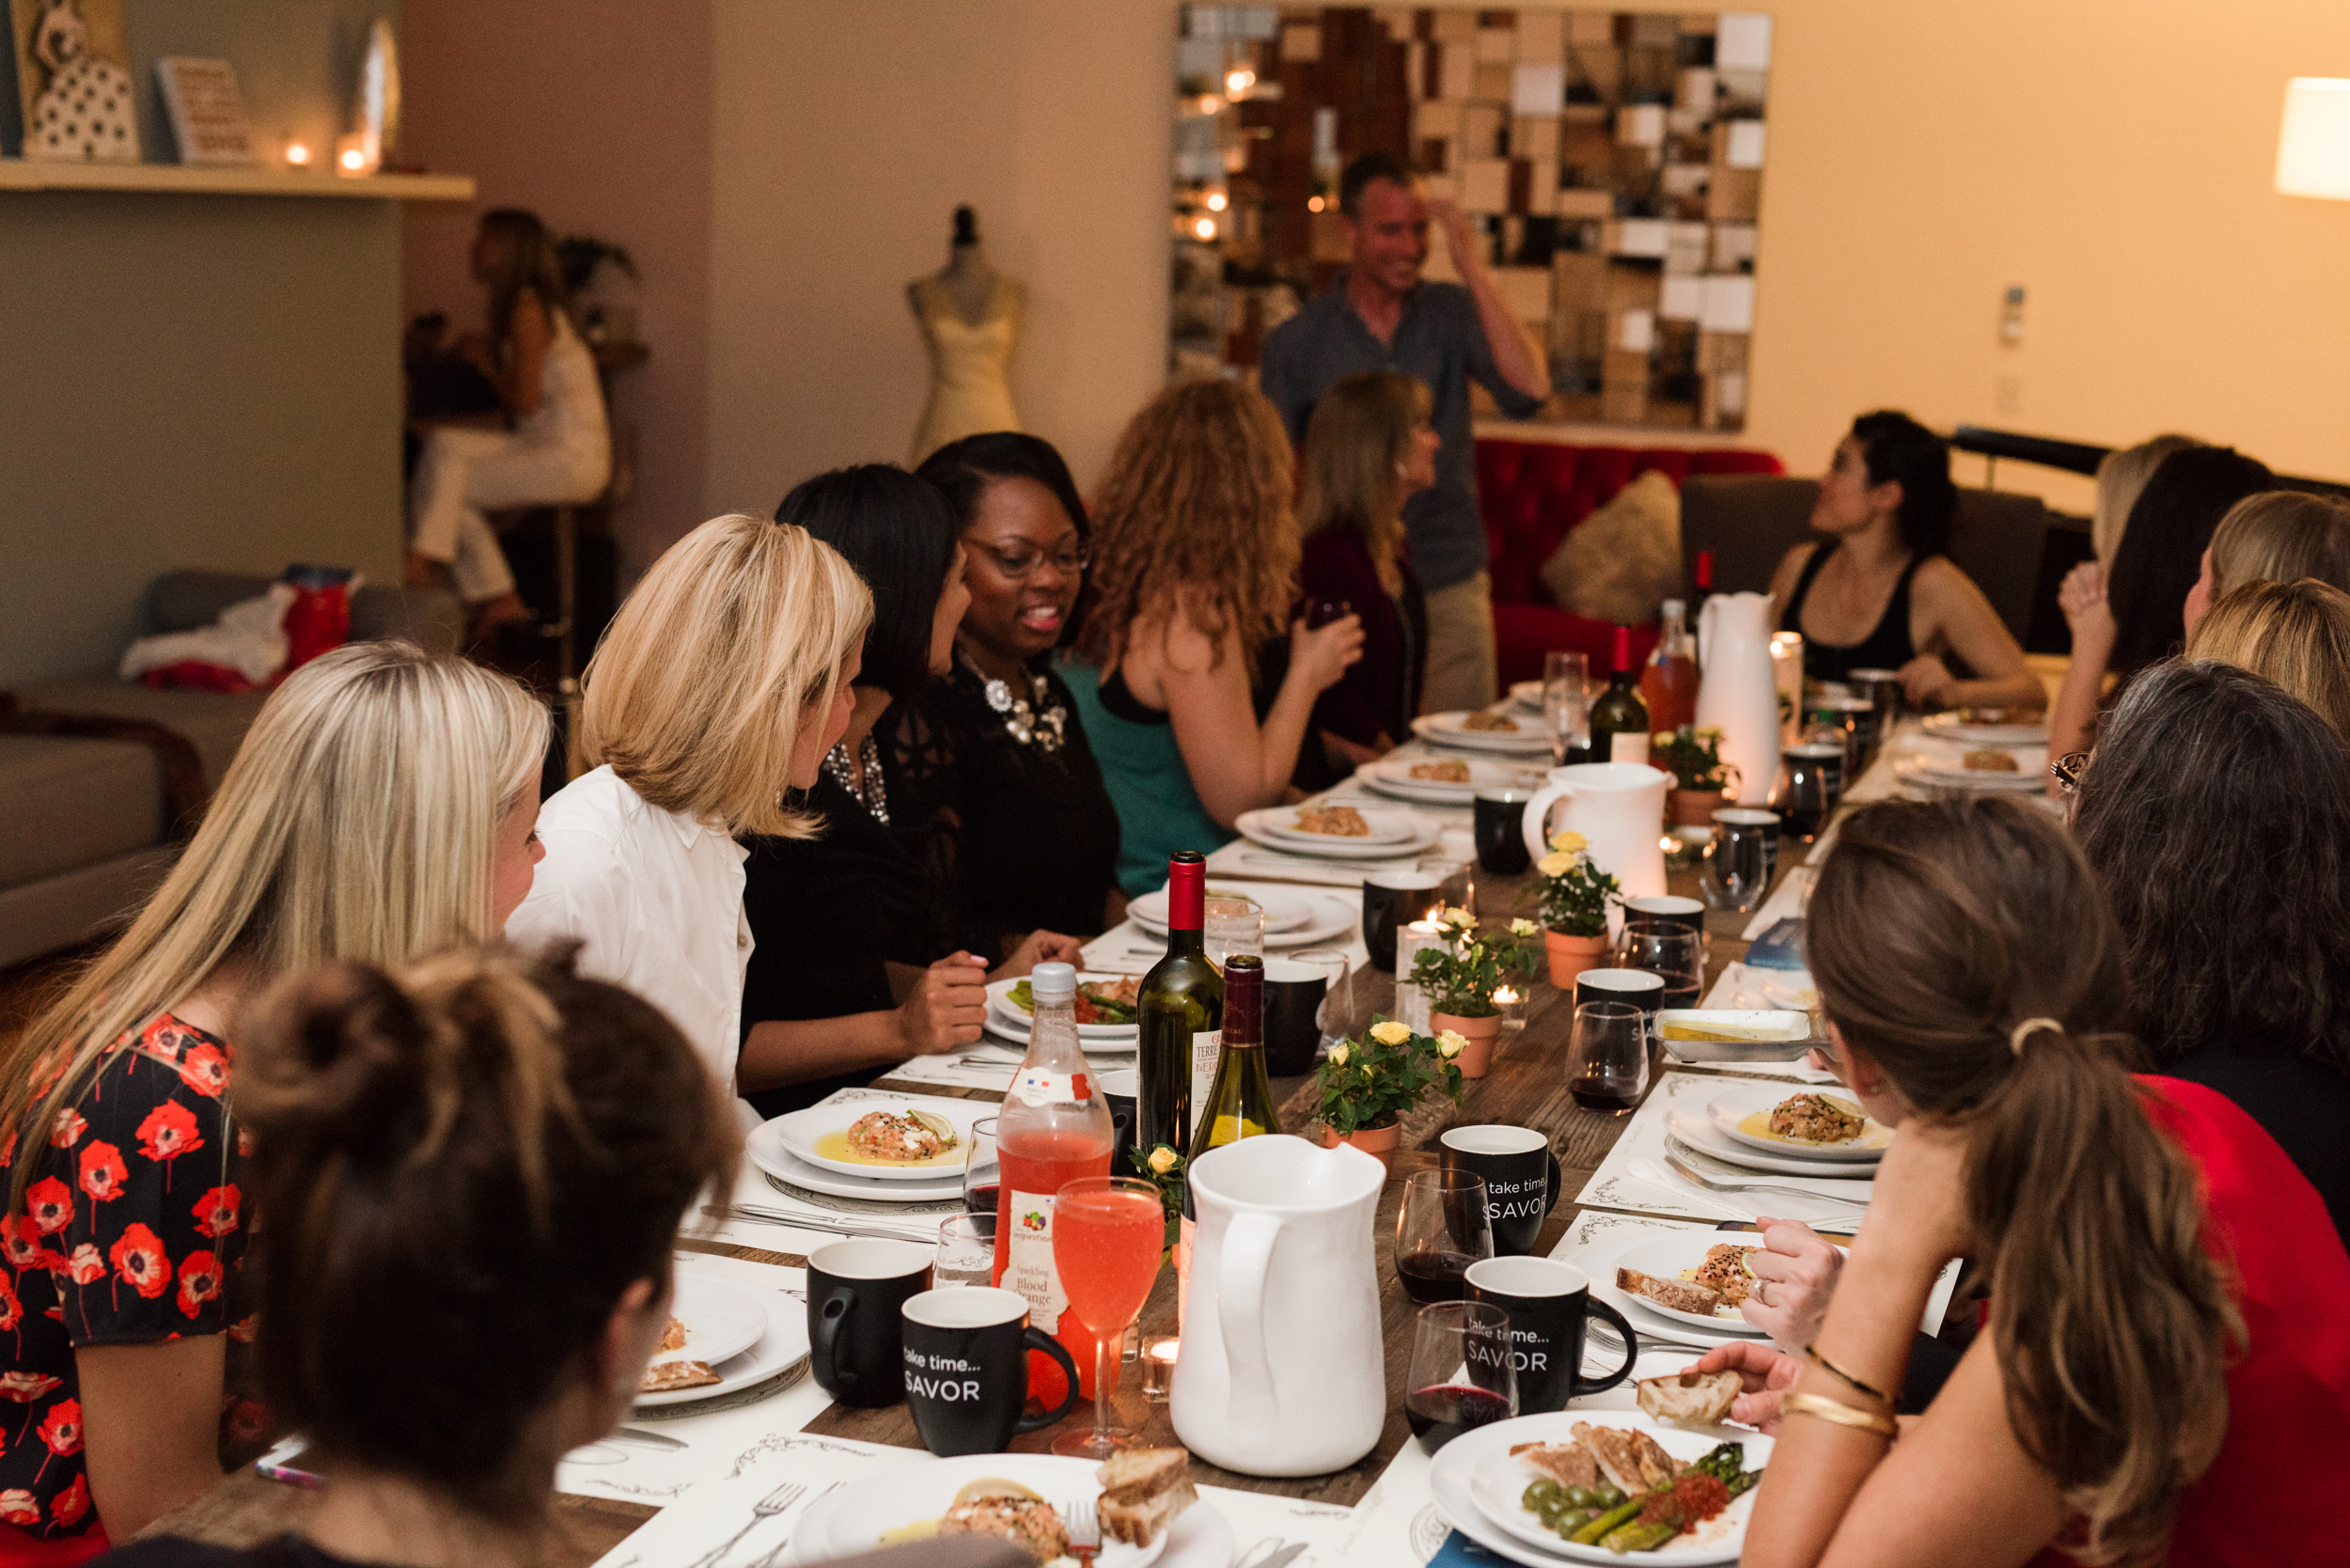 Our savor success circle president dinner party n 2016 in saugerties, ny.